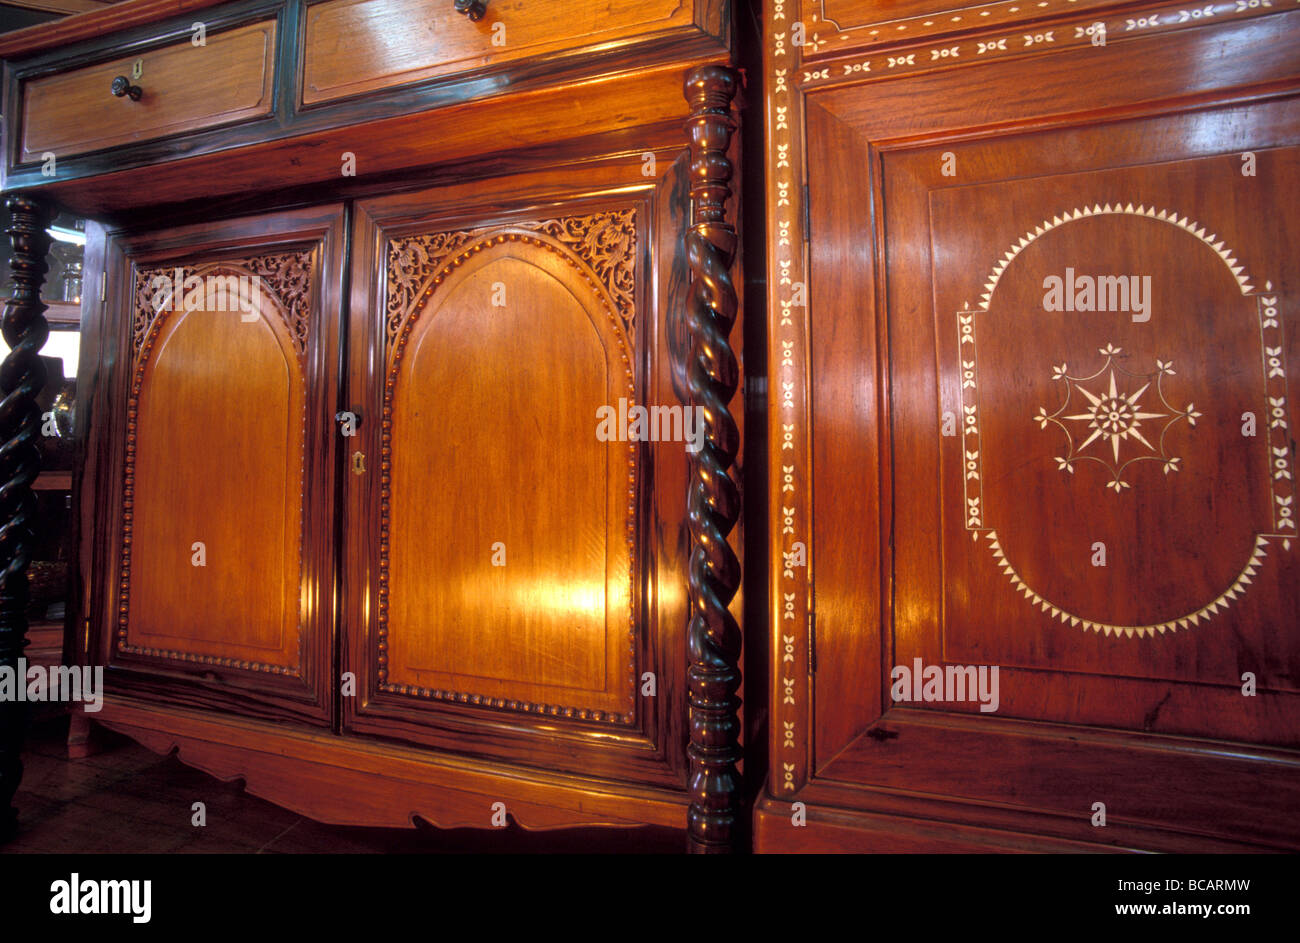 Antique Furniture Outlet Manila Philippines Stock Photo Royalty Free Image 24824377 Alamy